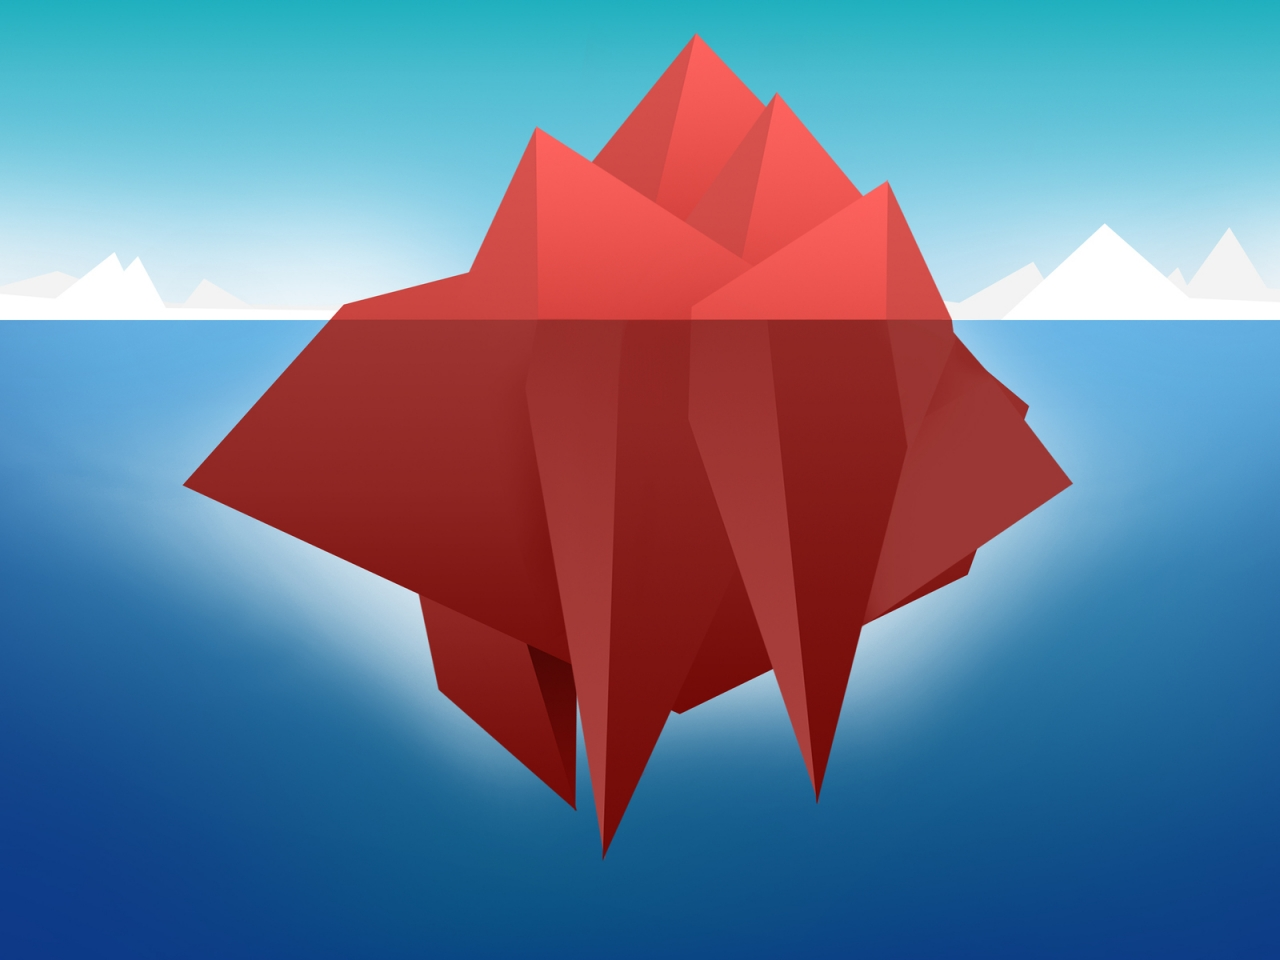 Red Minimal Iceberg for 1280 x 960 resolution